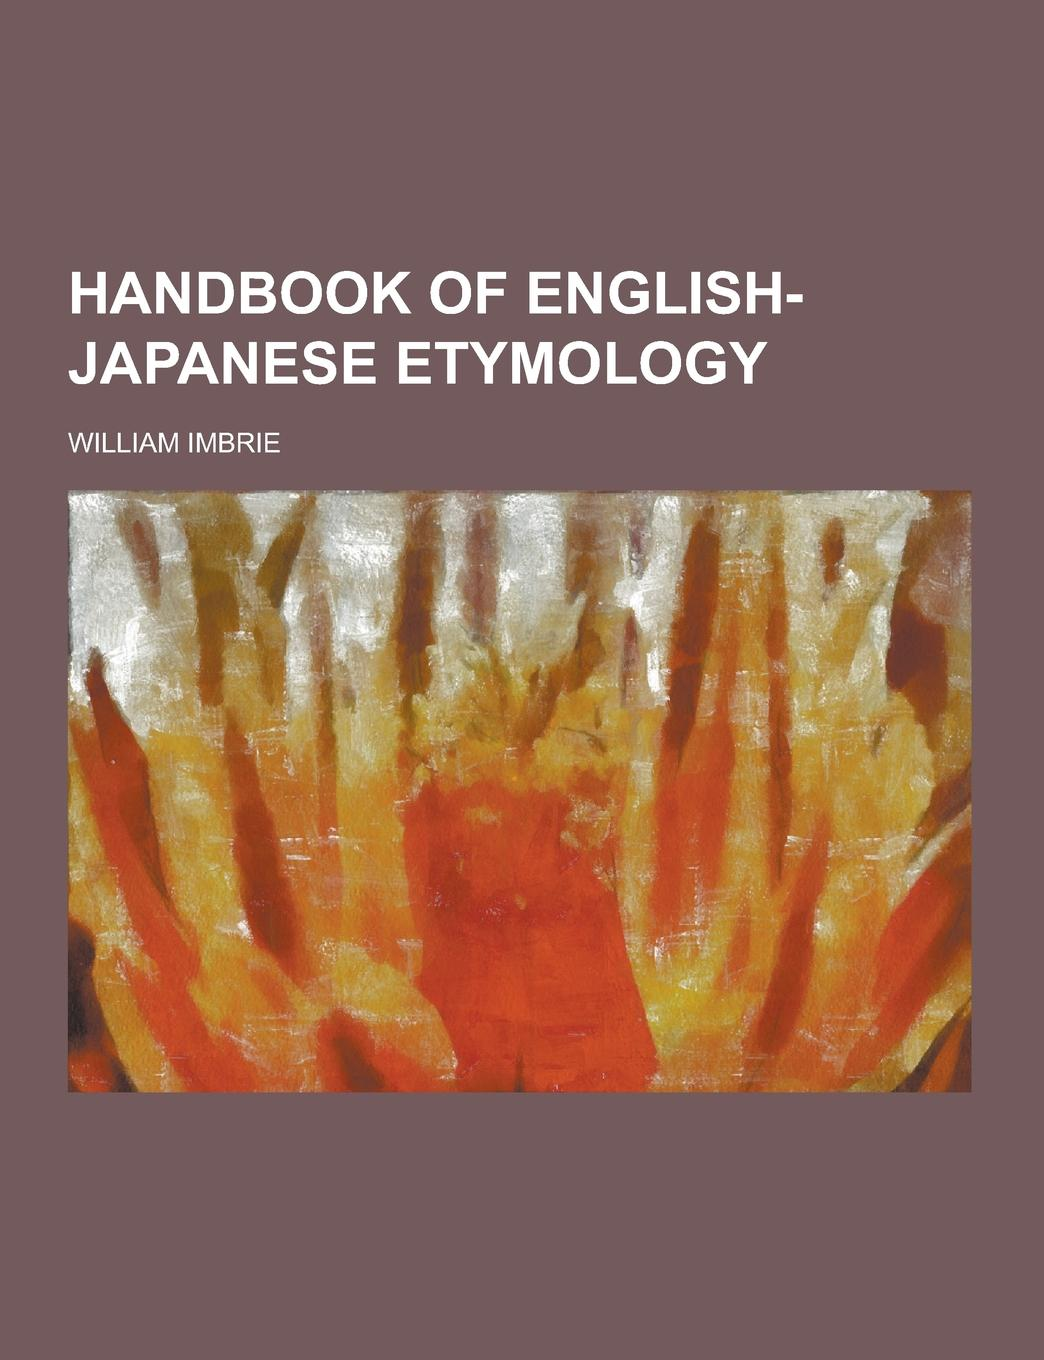 William Imbrie Handbook of English-Japanese Etymology